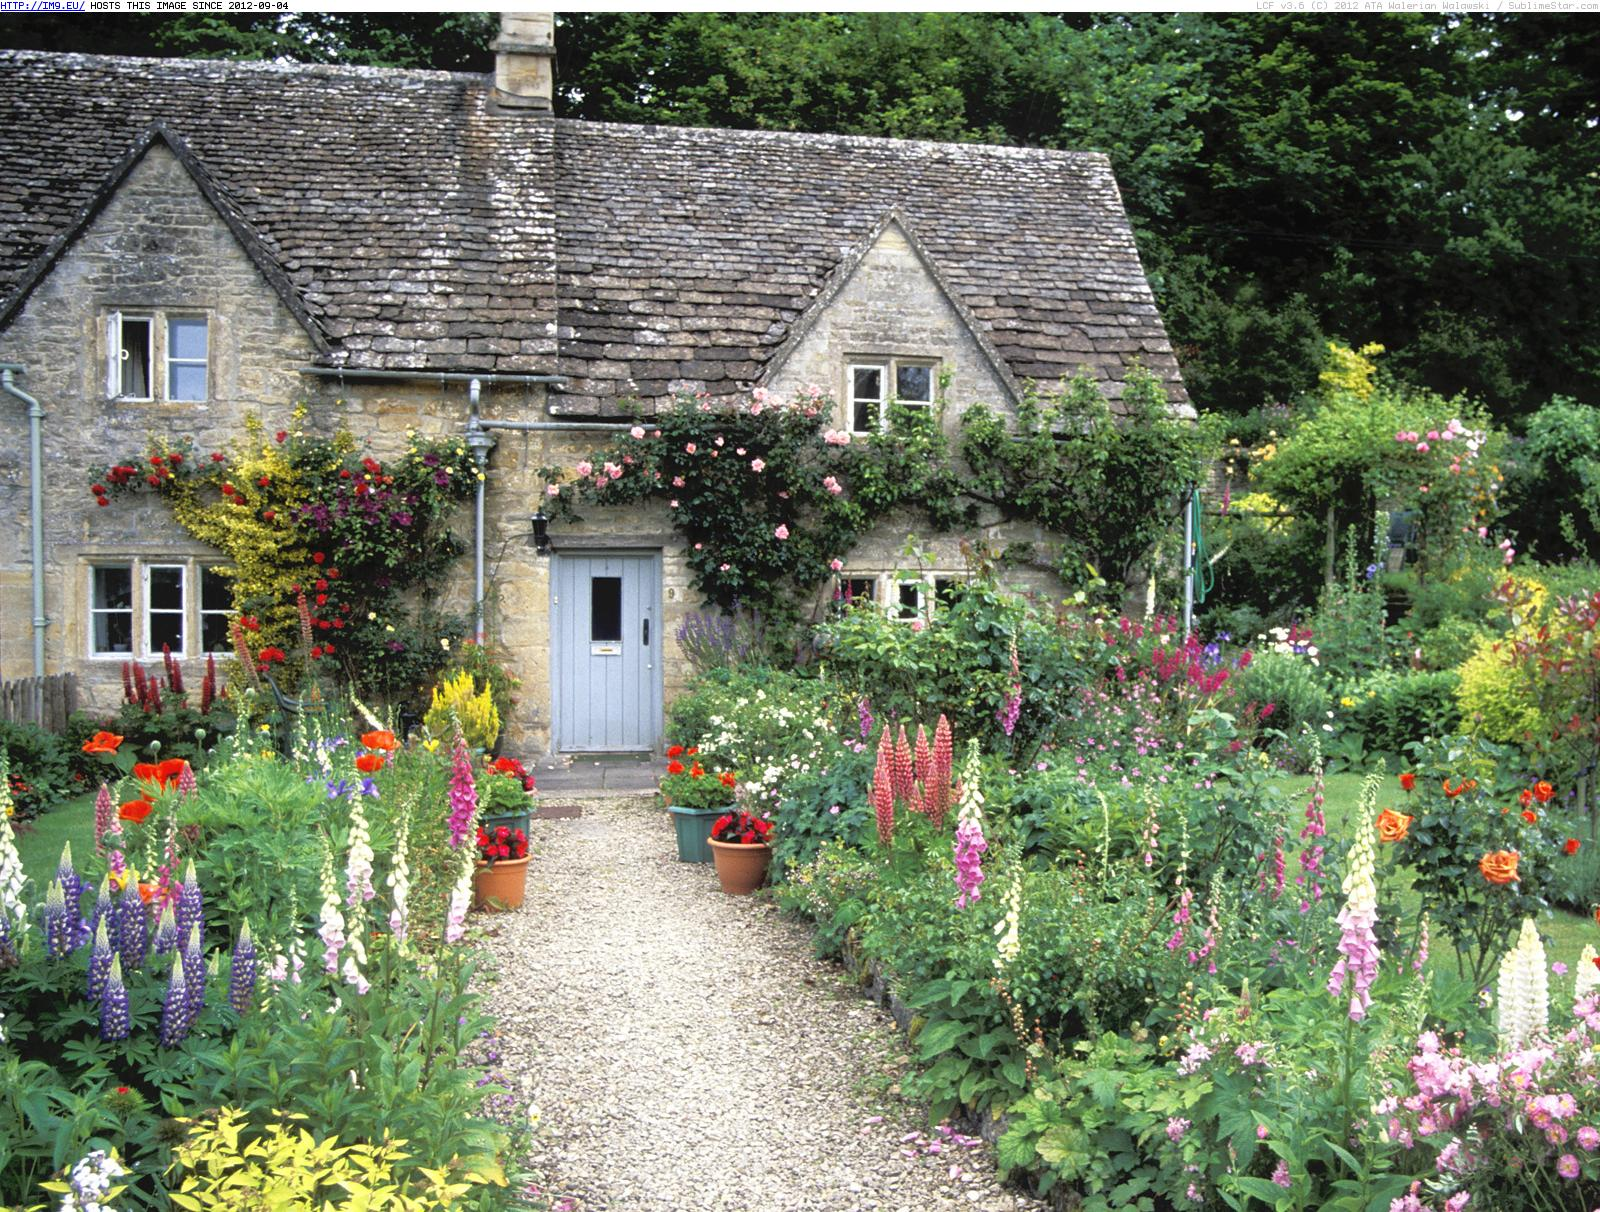 cottage garden bilbury gloucestershire england beautiful photos 1600x1212  pictures of gardens AURONXF